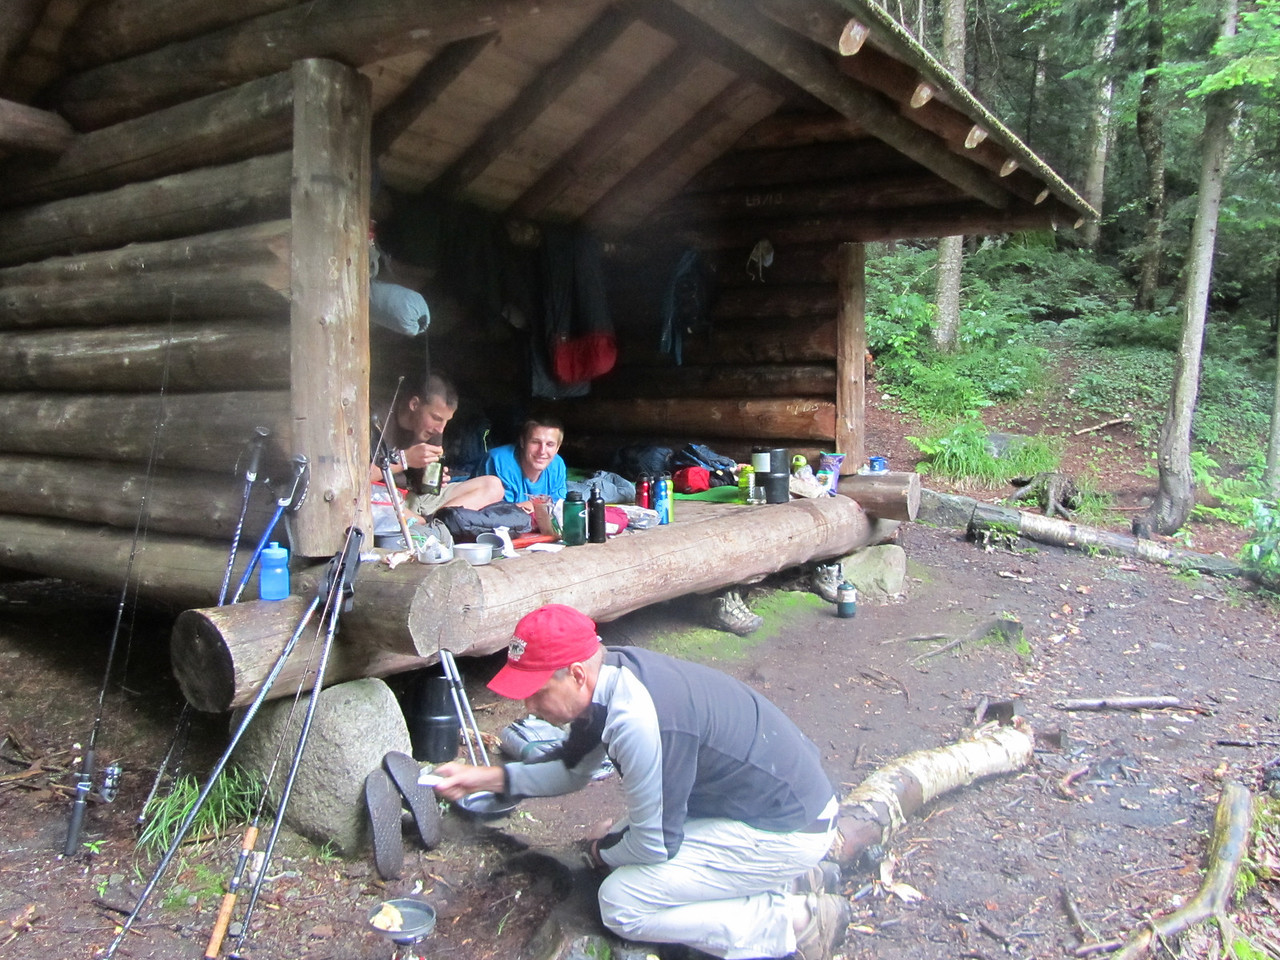 Our base camp for the night. Per usual, the boys are laying down while the men are getting it done. Rob cooking dinner, and me fighting off a hungry 300lb black bear trying to get to the trout.